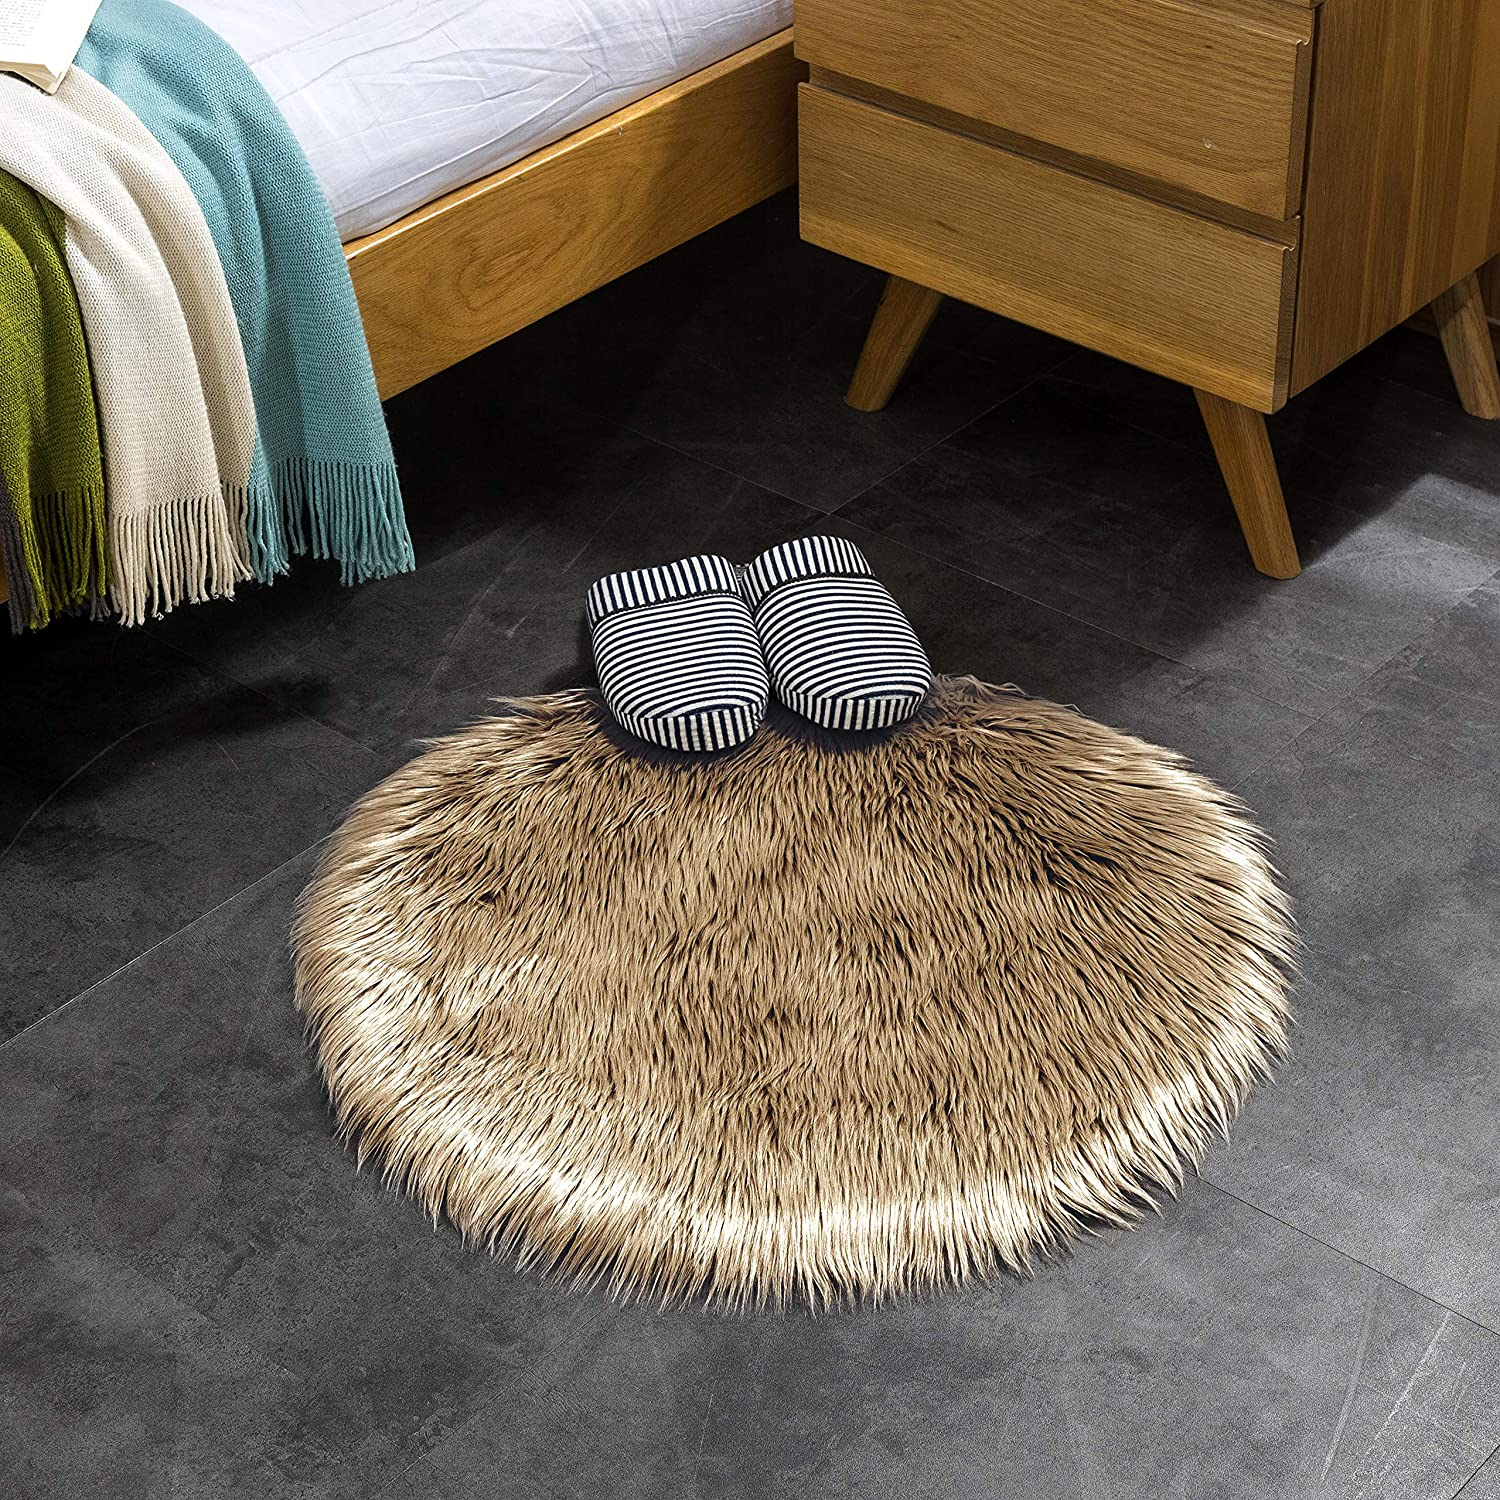 Furry Carpet Or Throw For Chairs Fluffy Rug For The Bedroom Stools And Couches Lambskin Fur Rug Living Room Or Nursery Round 120 Cm Mint Teppich Wolkchen Faux Sheepskin Rugs Carpets